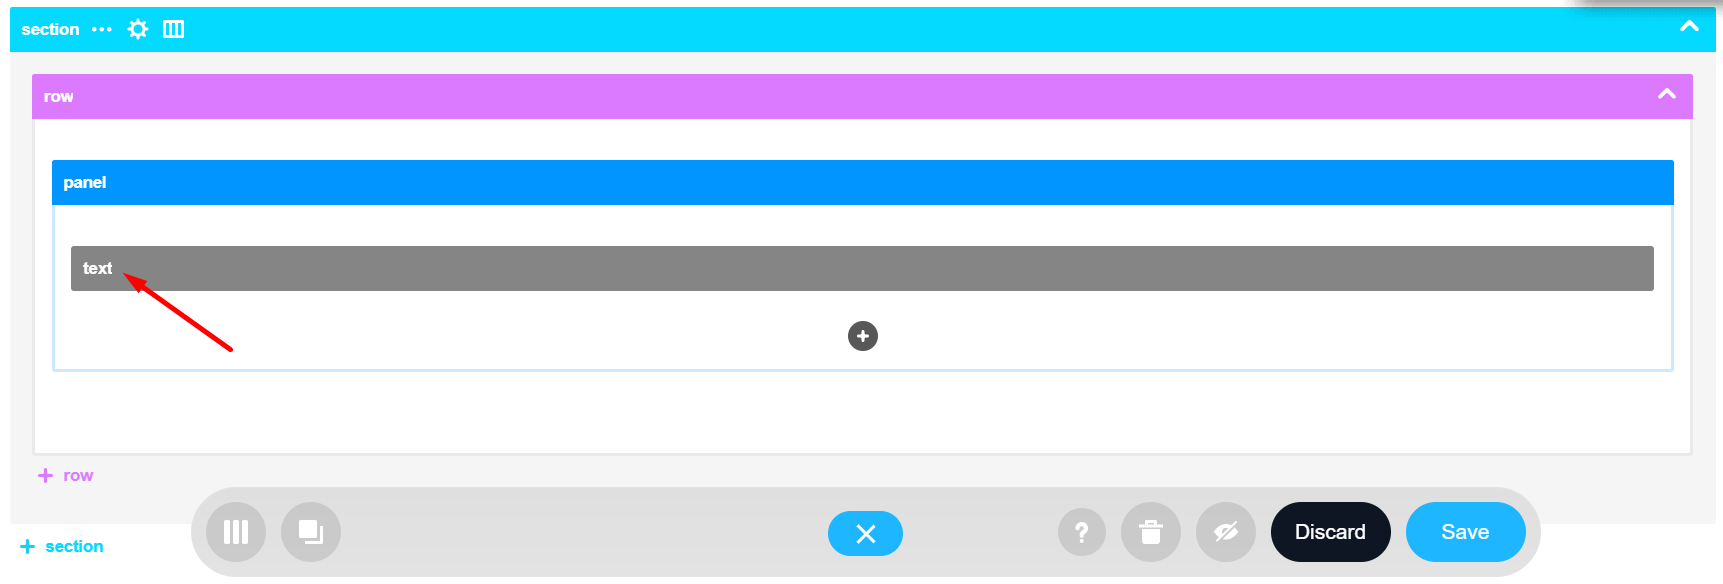 Text Design Element is added as a result